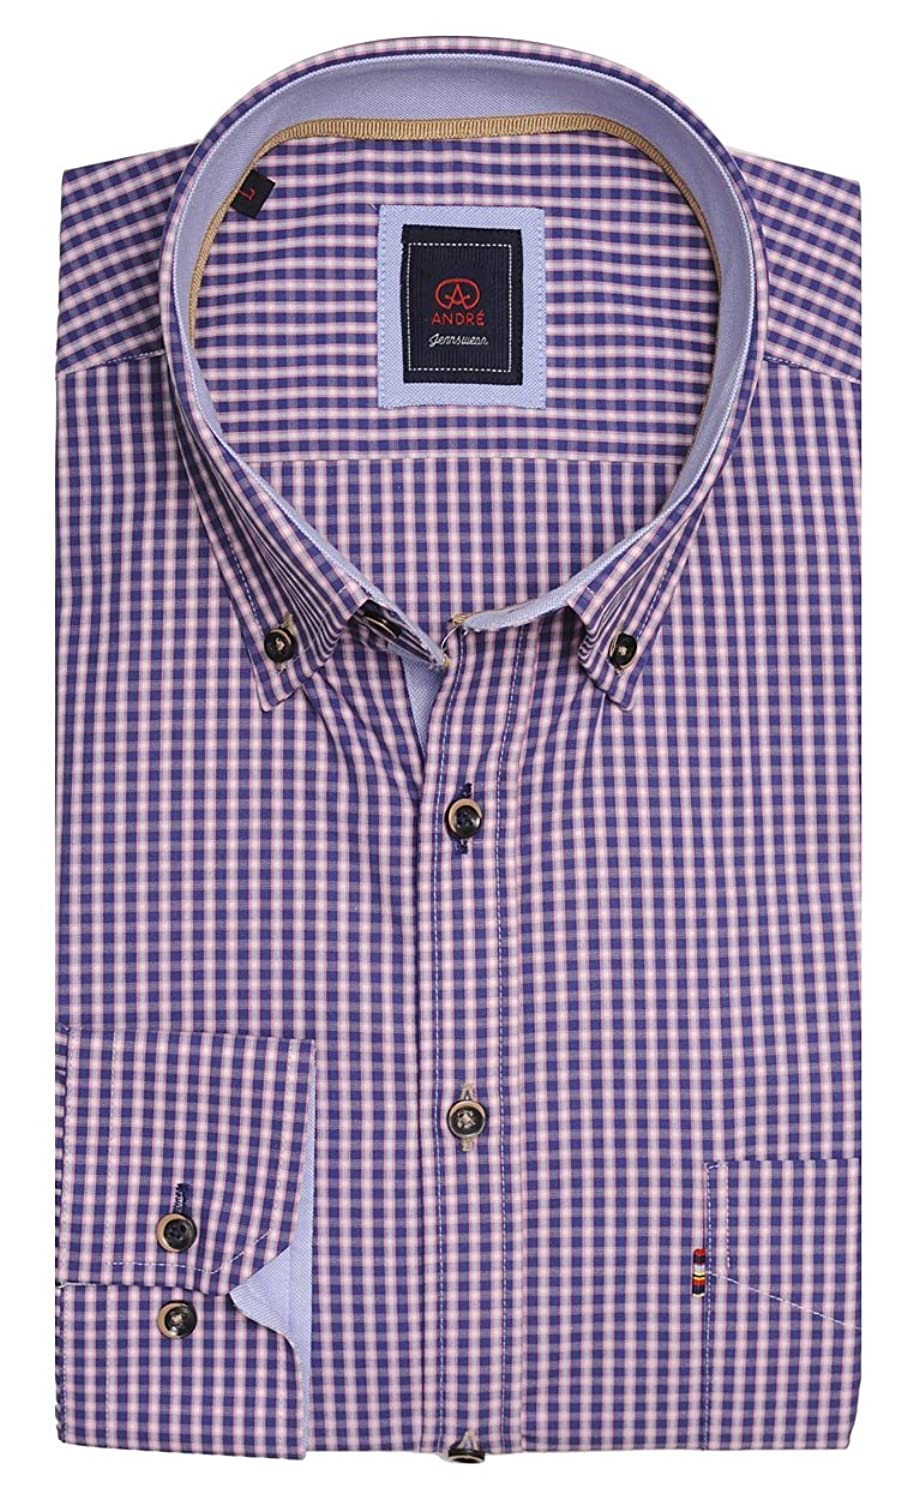 Wexford 100% Luxury Cotton Smart Casual Shirt in rose and beautifully designed by Andr茅 Menswear